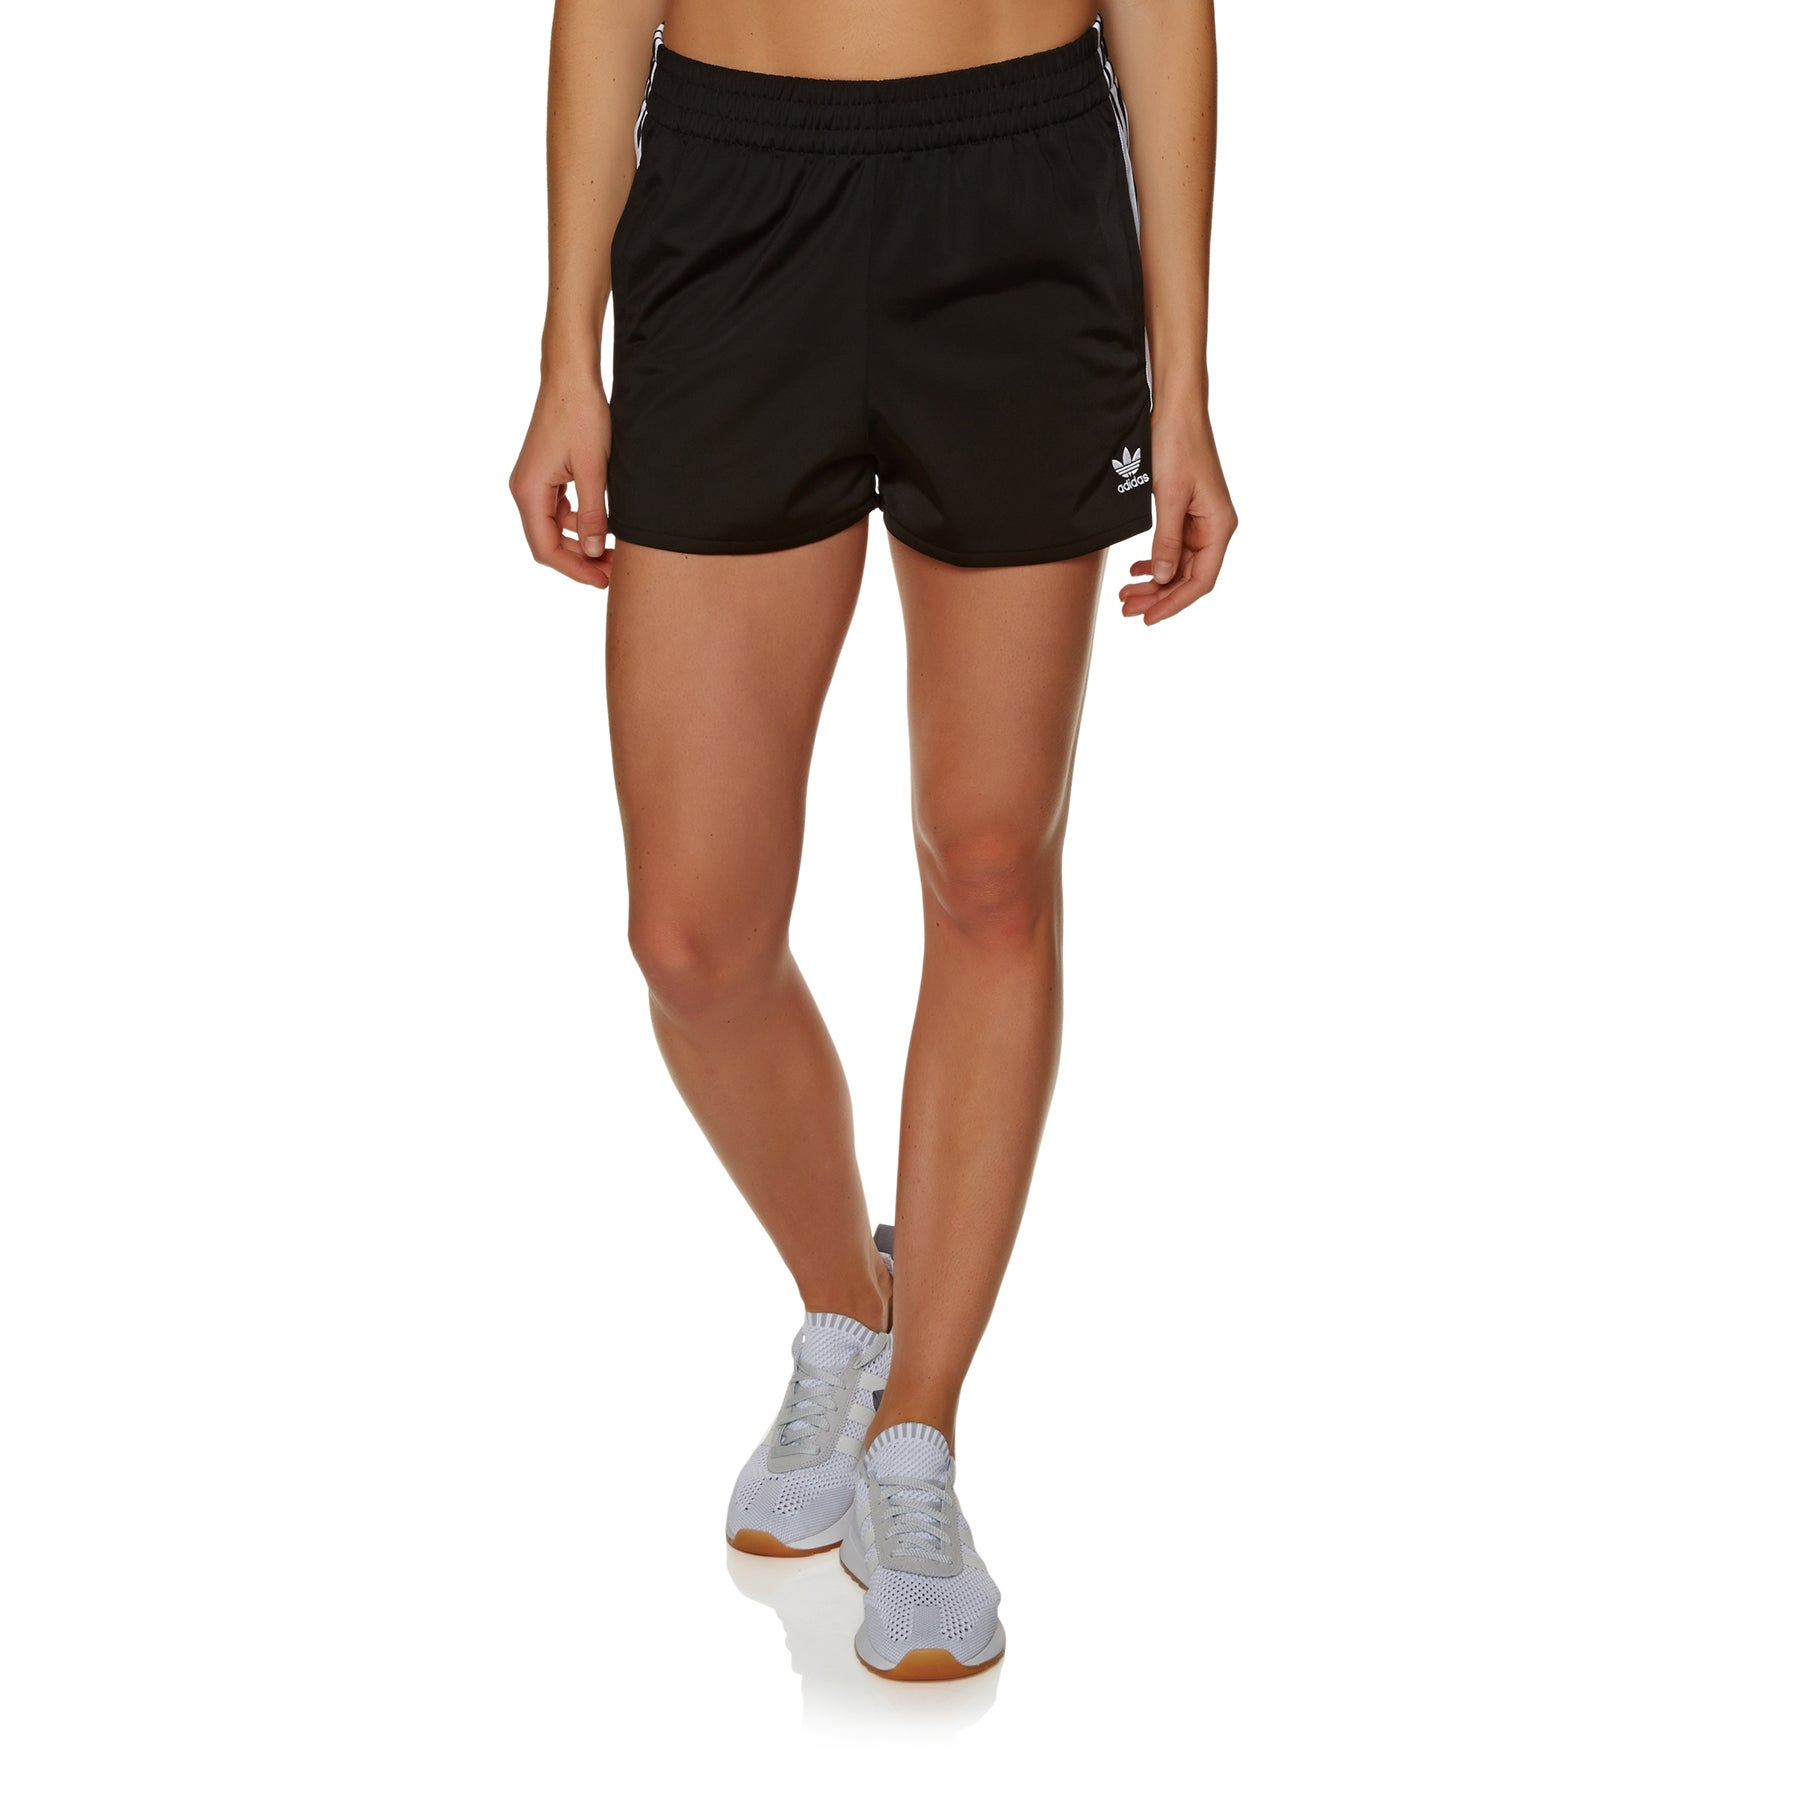 Adidas Originals 3 Stripe Dame Shorts - Black